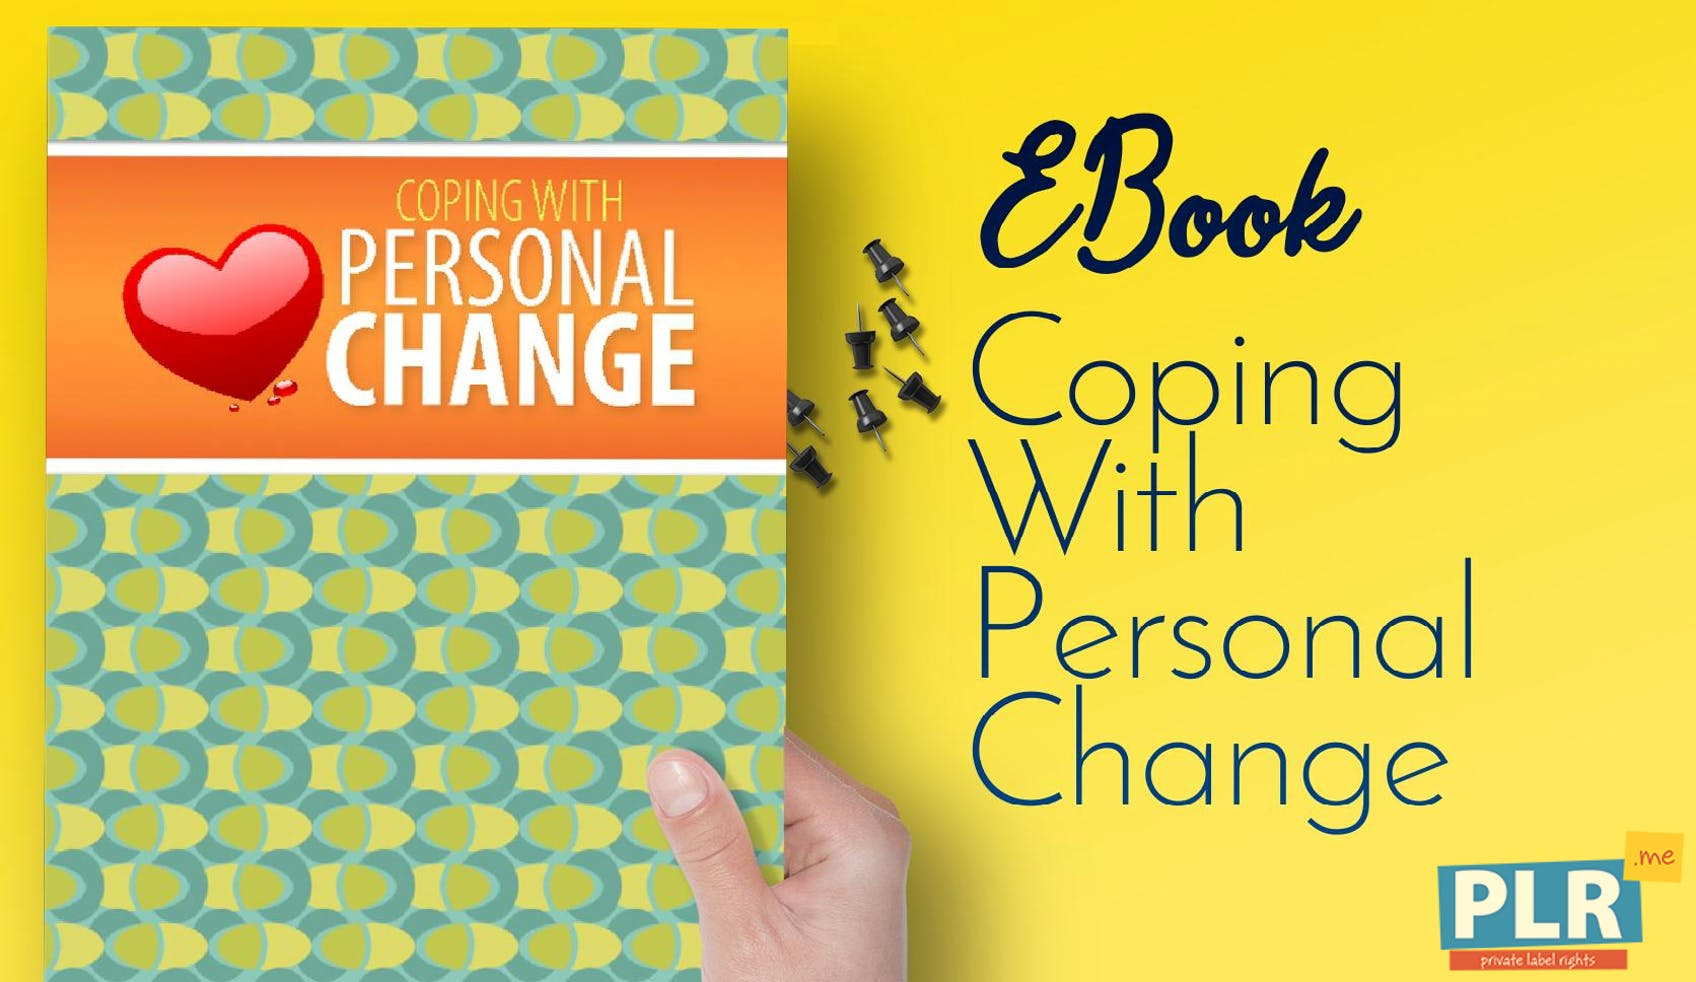 Coping With Personal Change